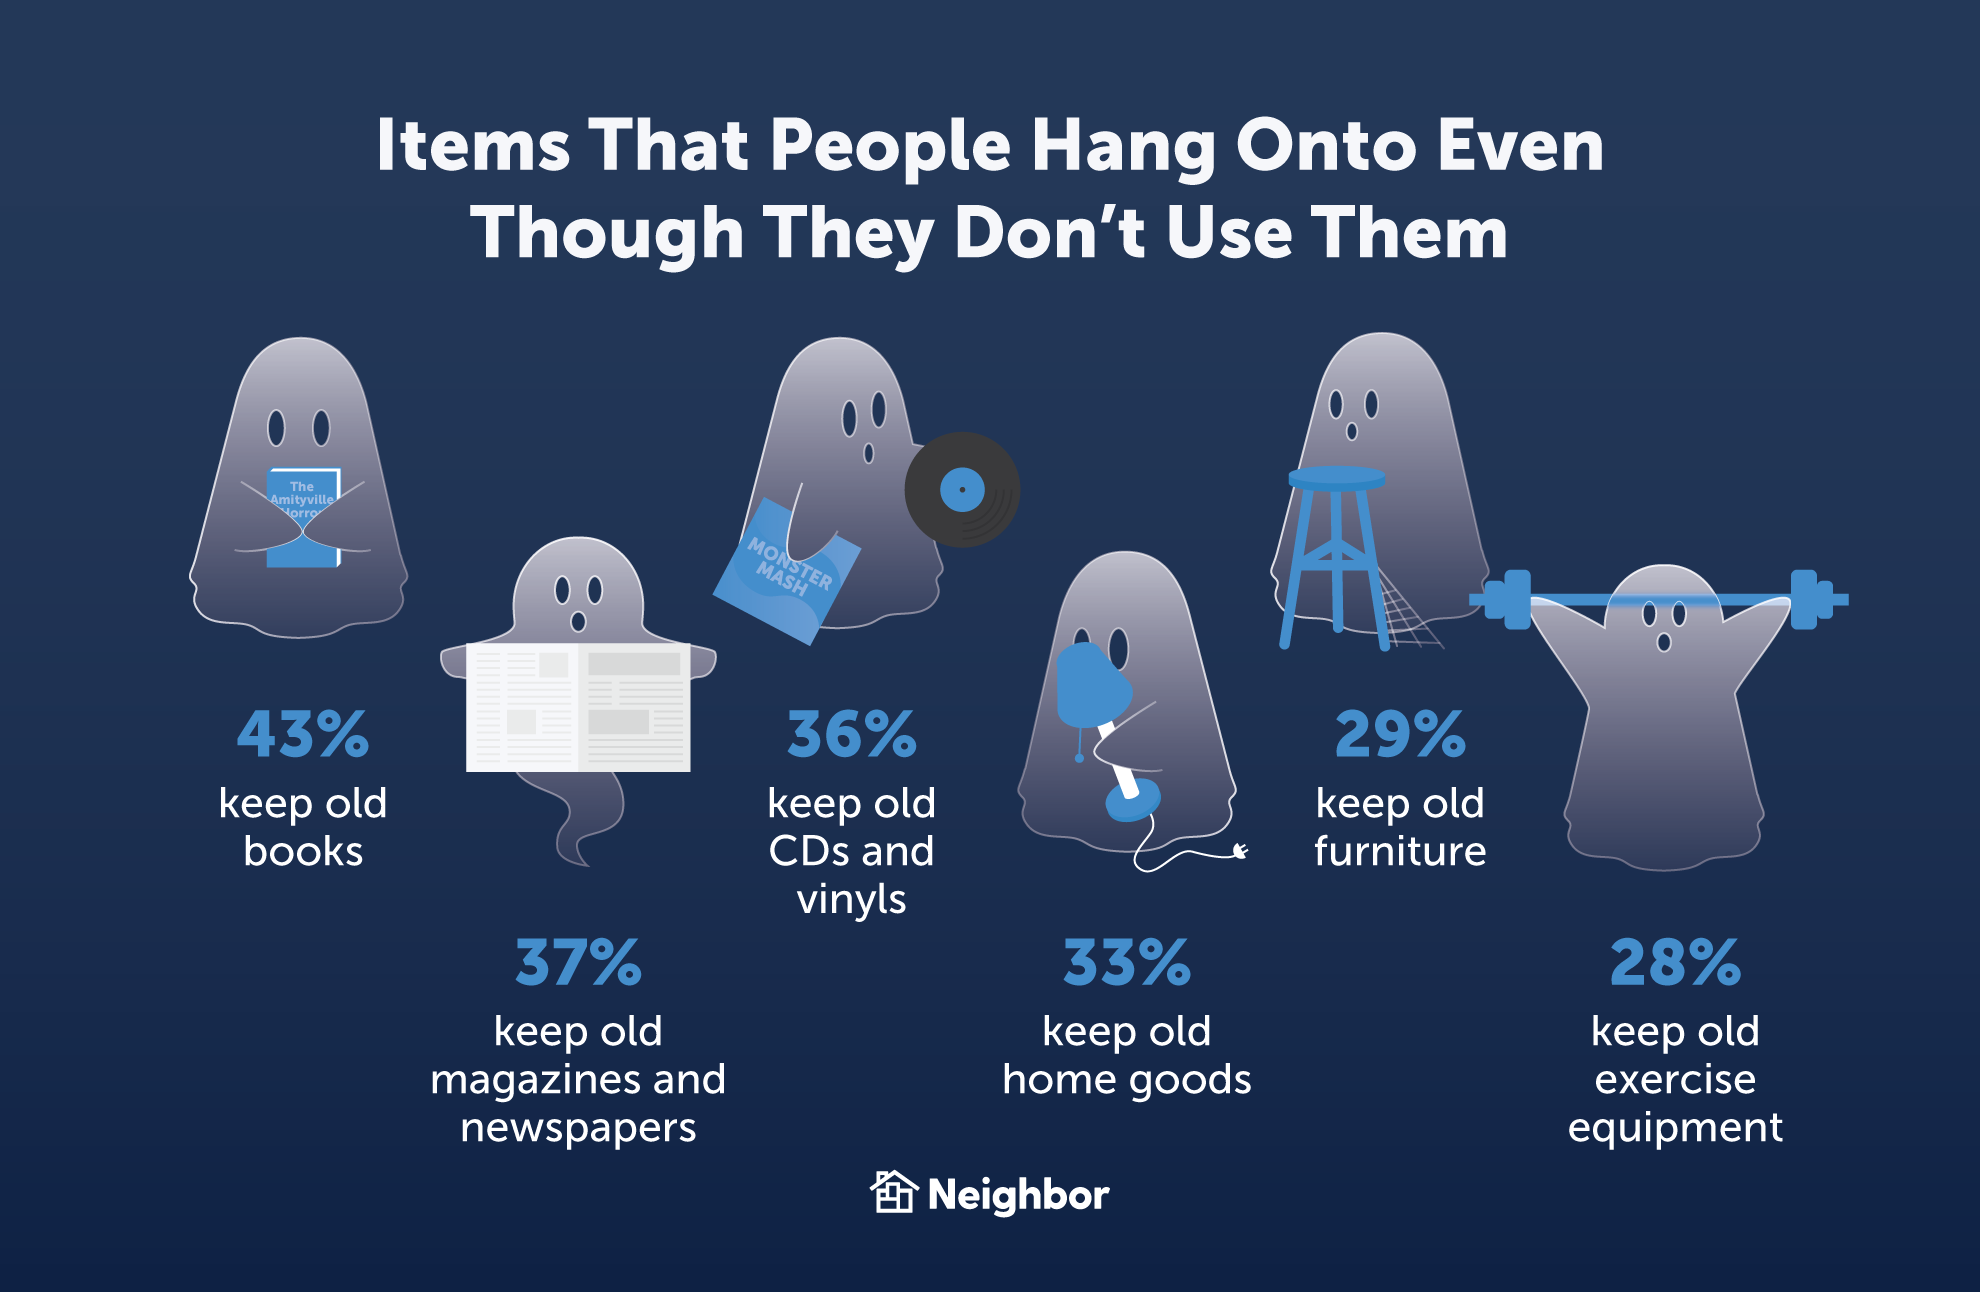 Many people hang onto old items (even if they no longer need them)